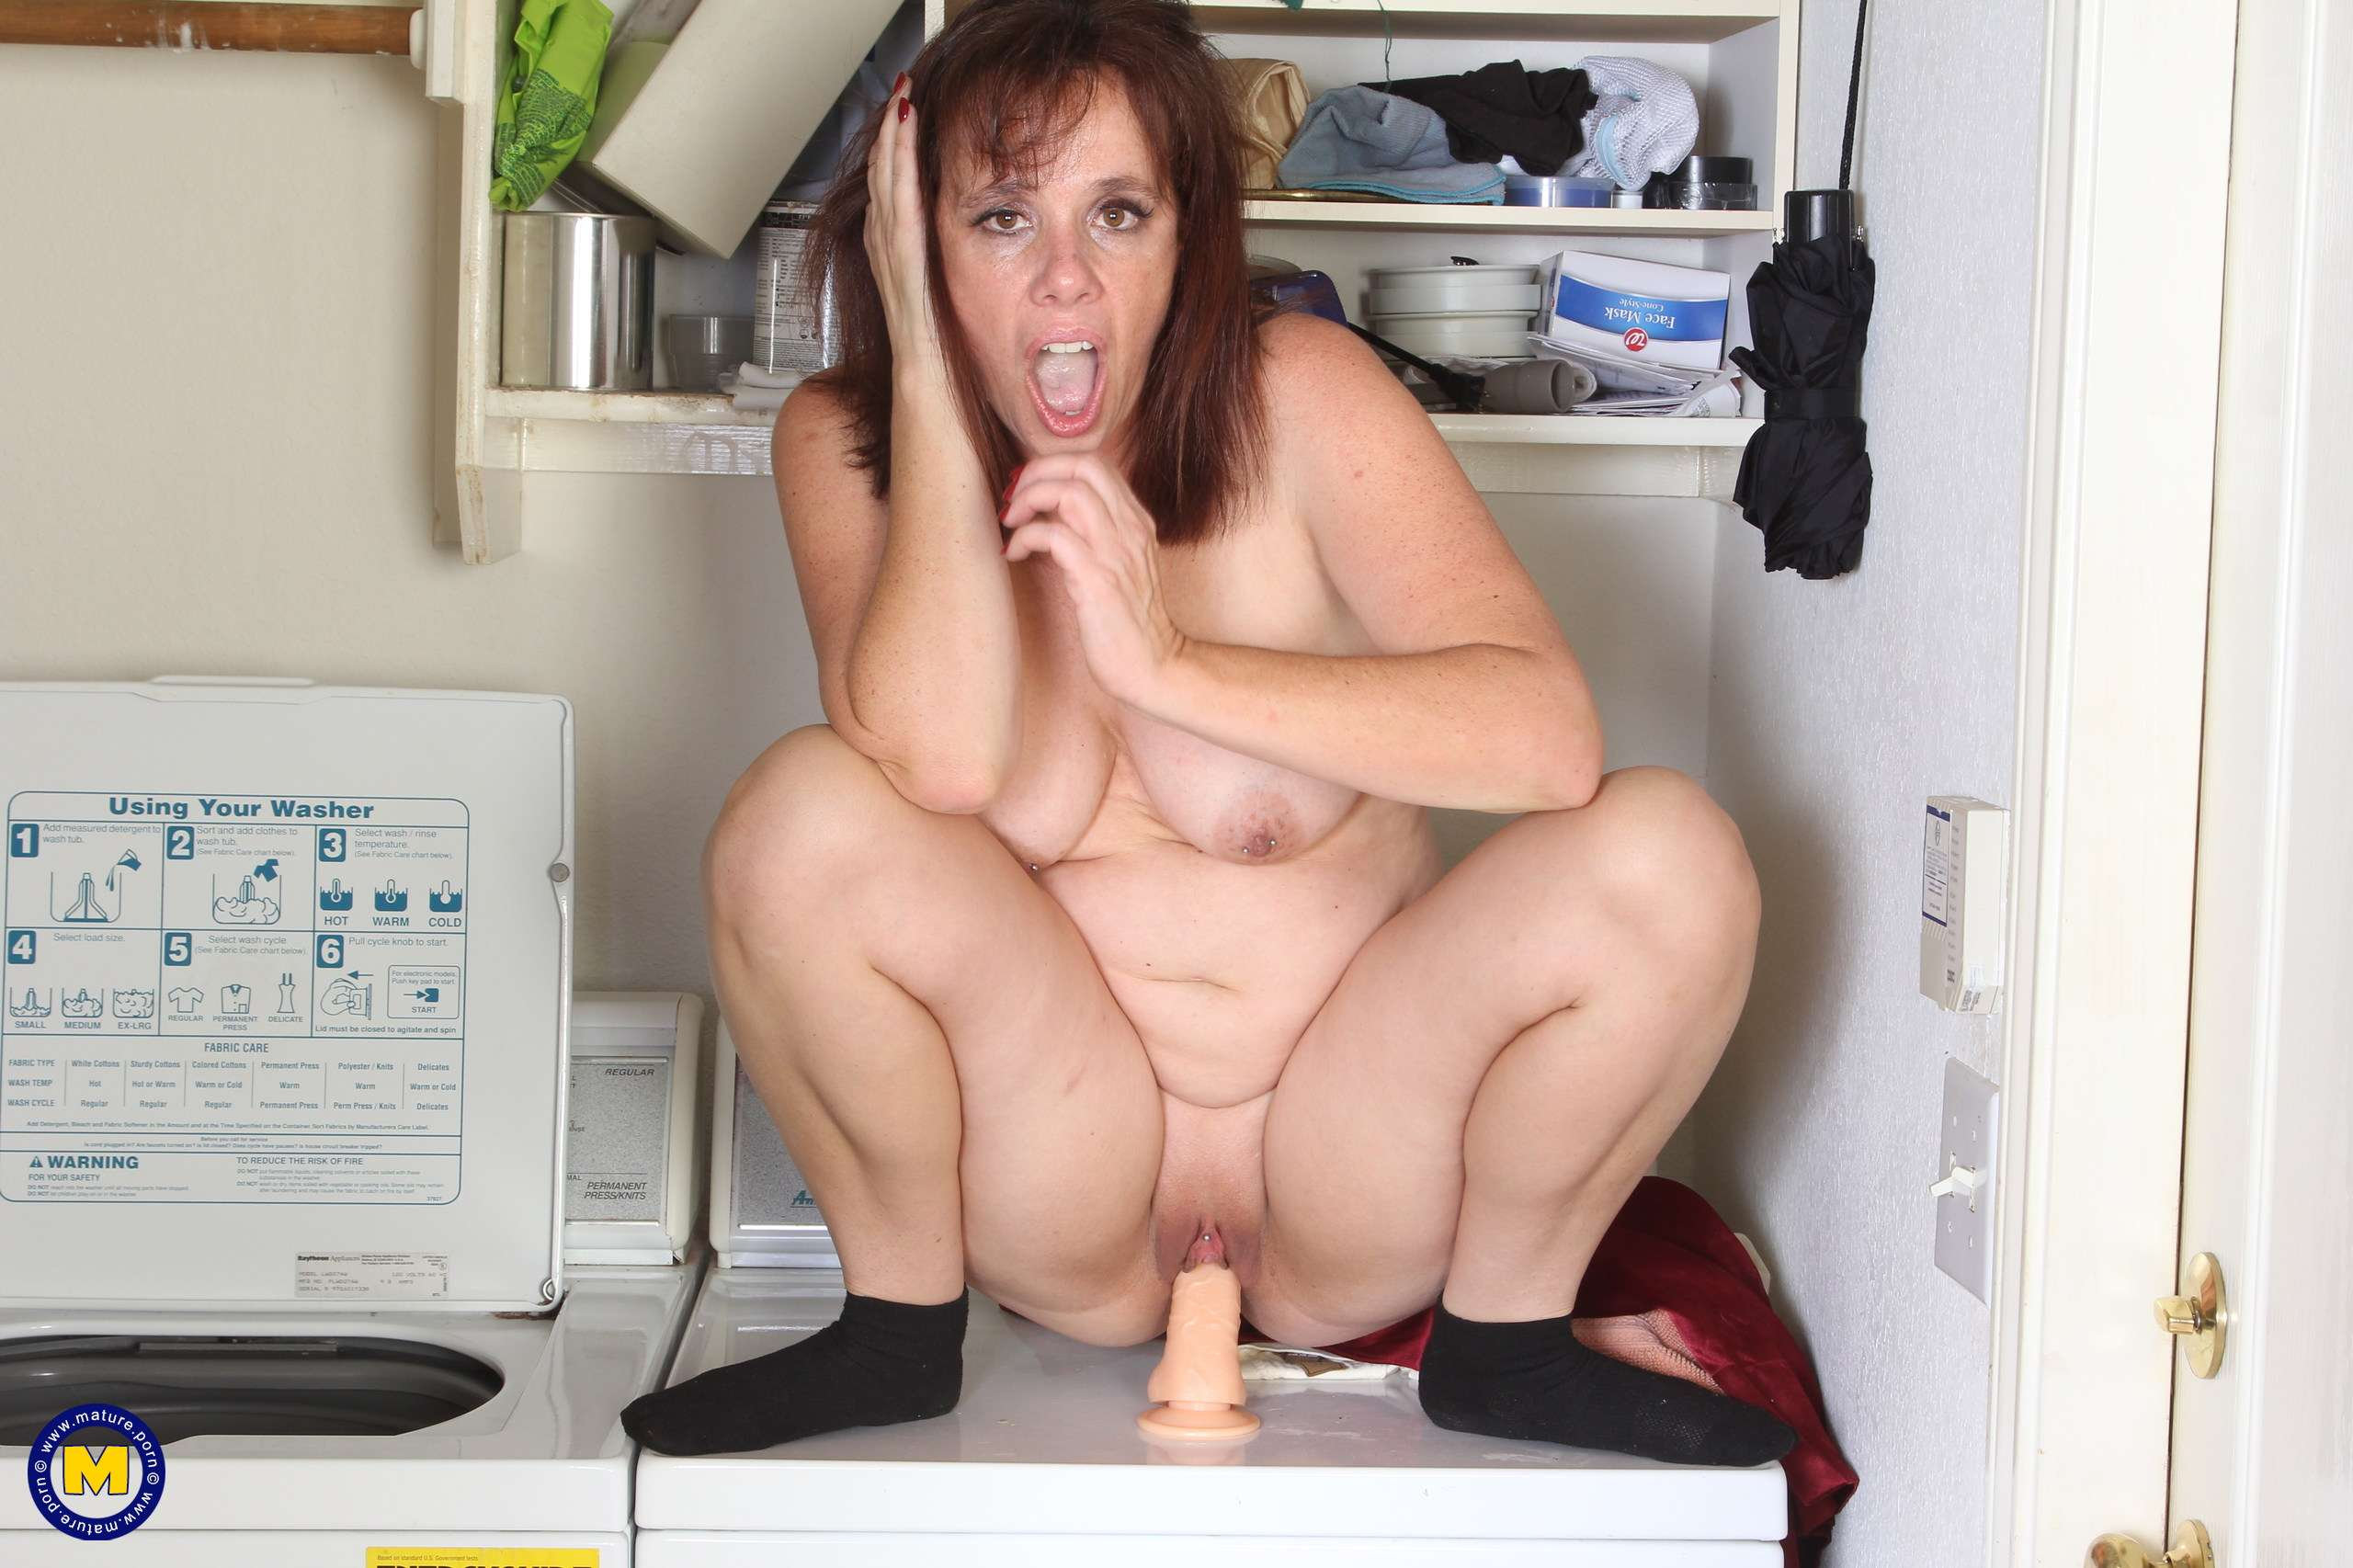 Naughty American slut playing around in the laundry room